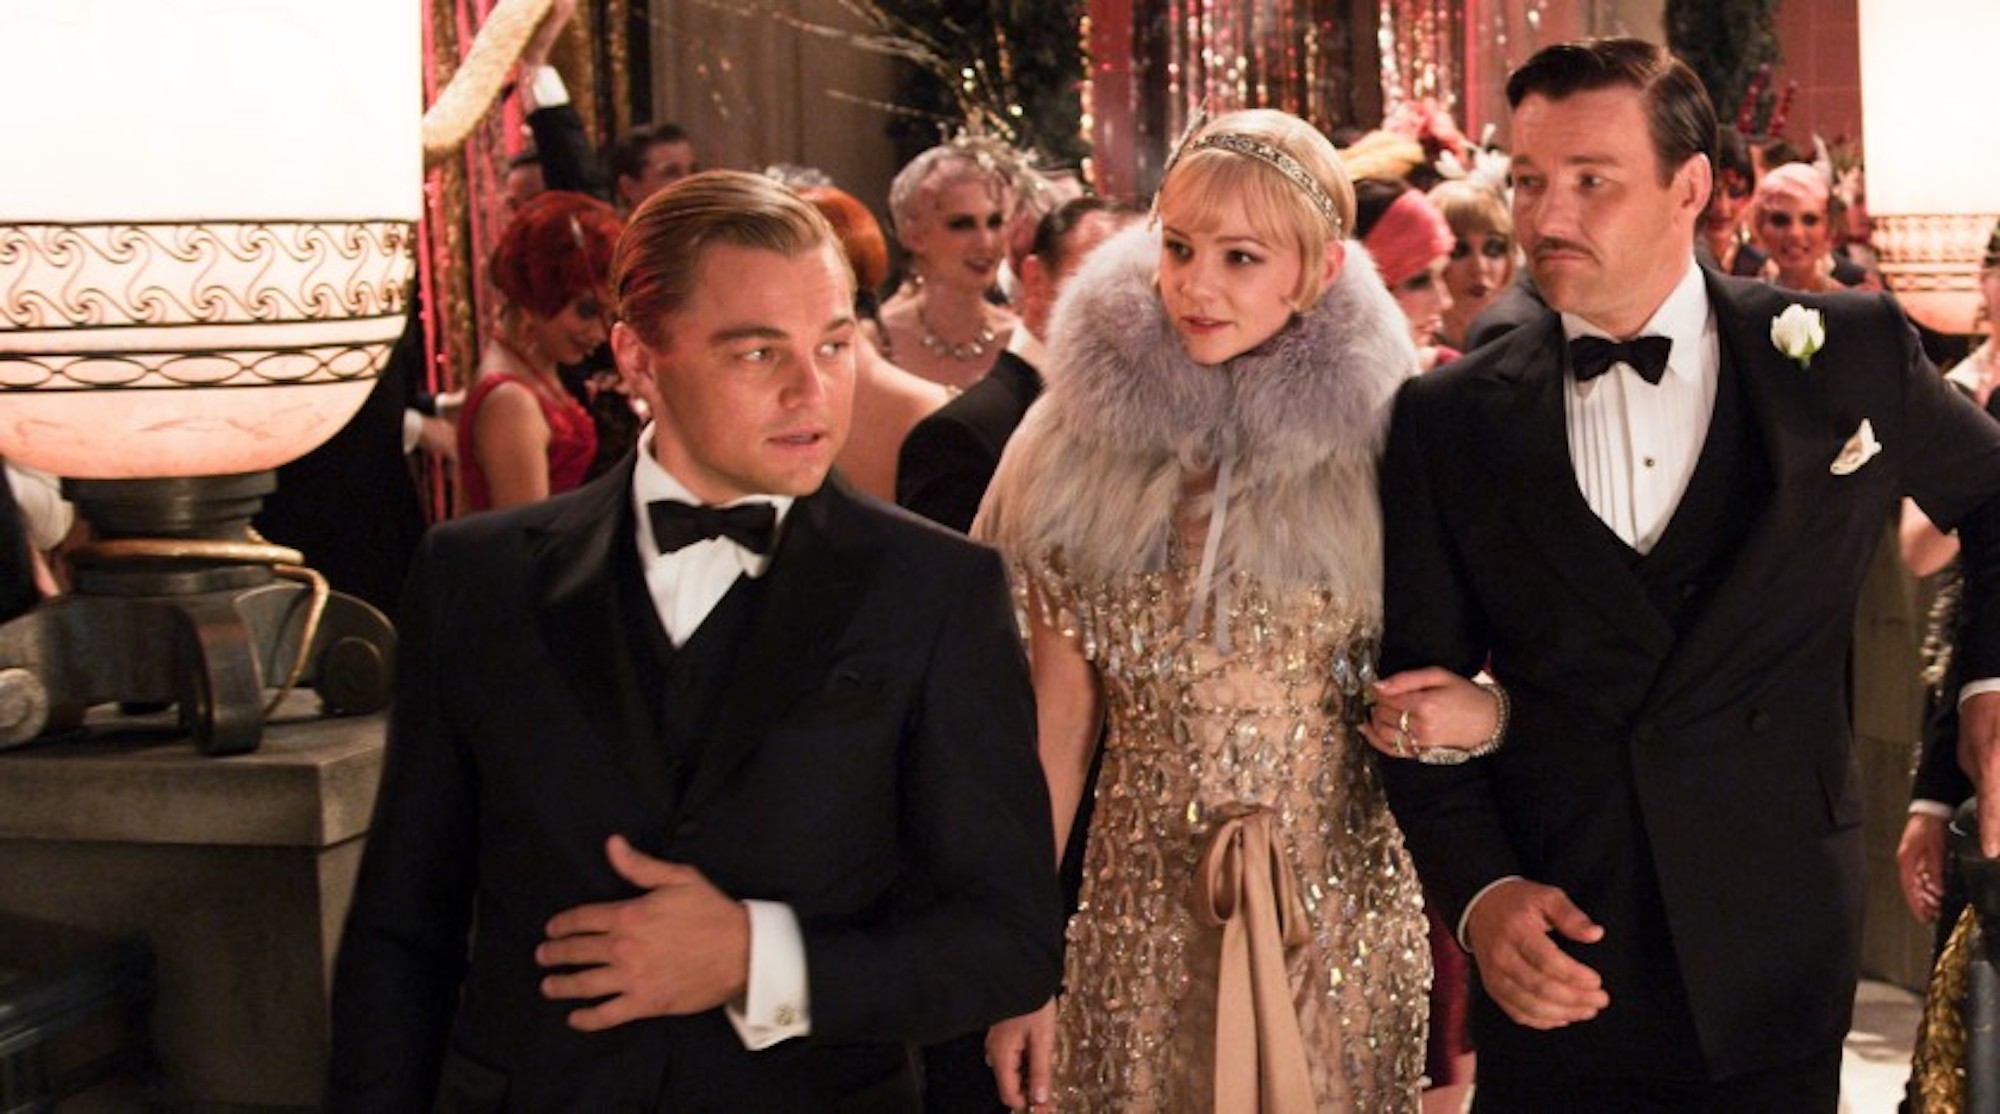 The great gatsby 2013 party scene Leonardo DiCaprio